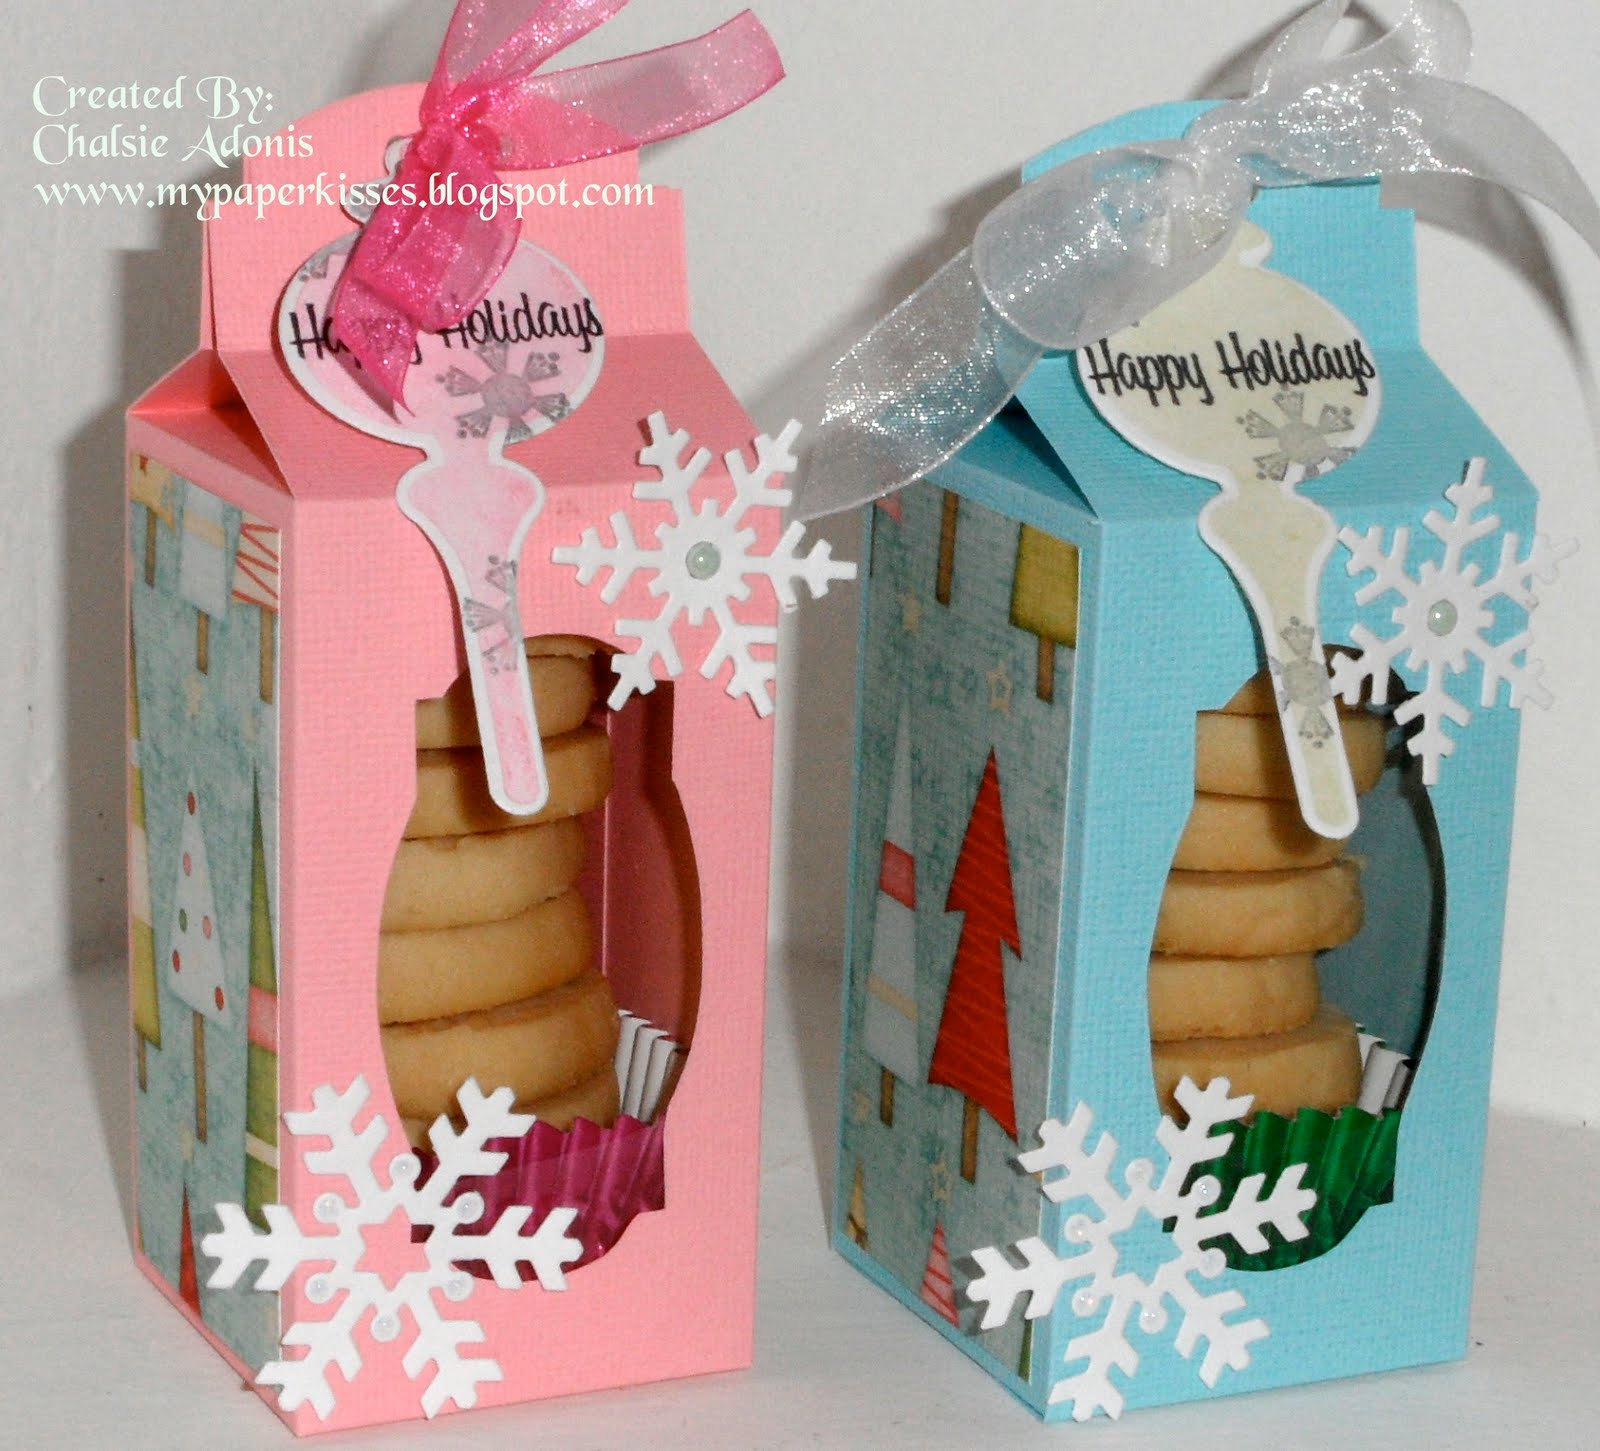 Paper Kisses: Christmas Cookie Boxes